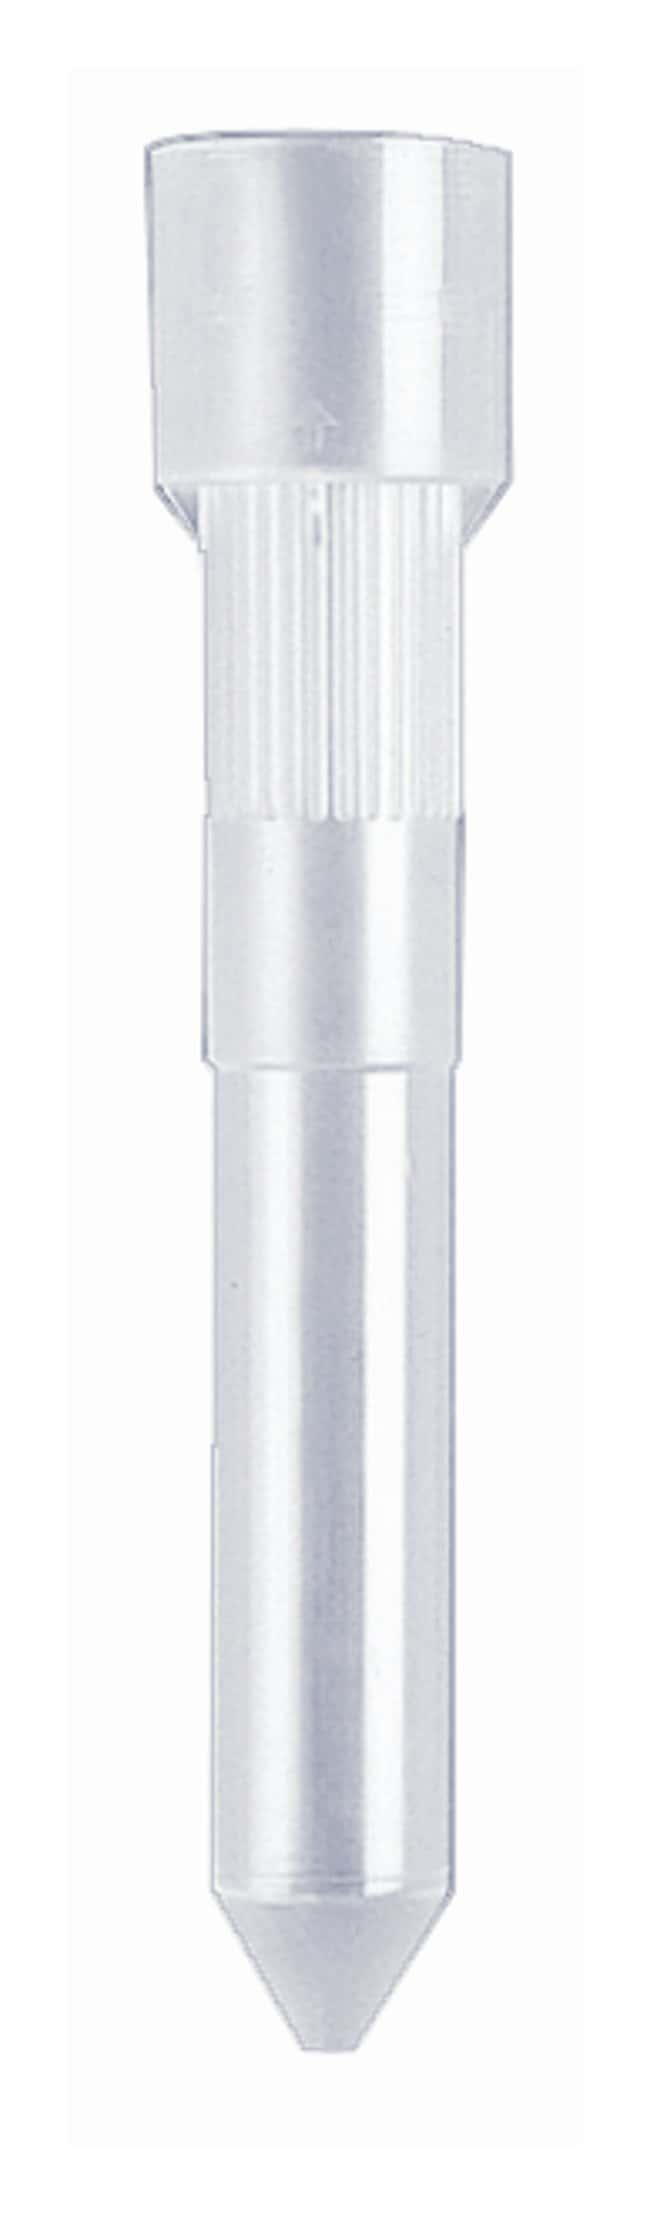 BRAND™ Pointes de pipettes Transferpettor™ 2 to 10mL; Orange BRAND™ Pointes de pipettes Transferpettor™